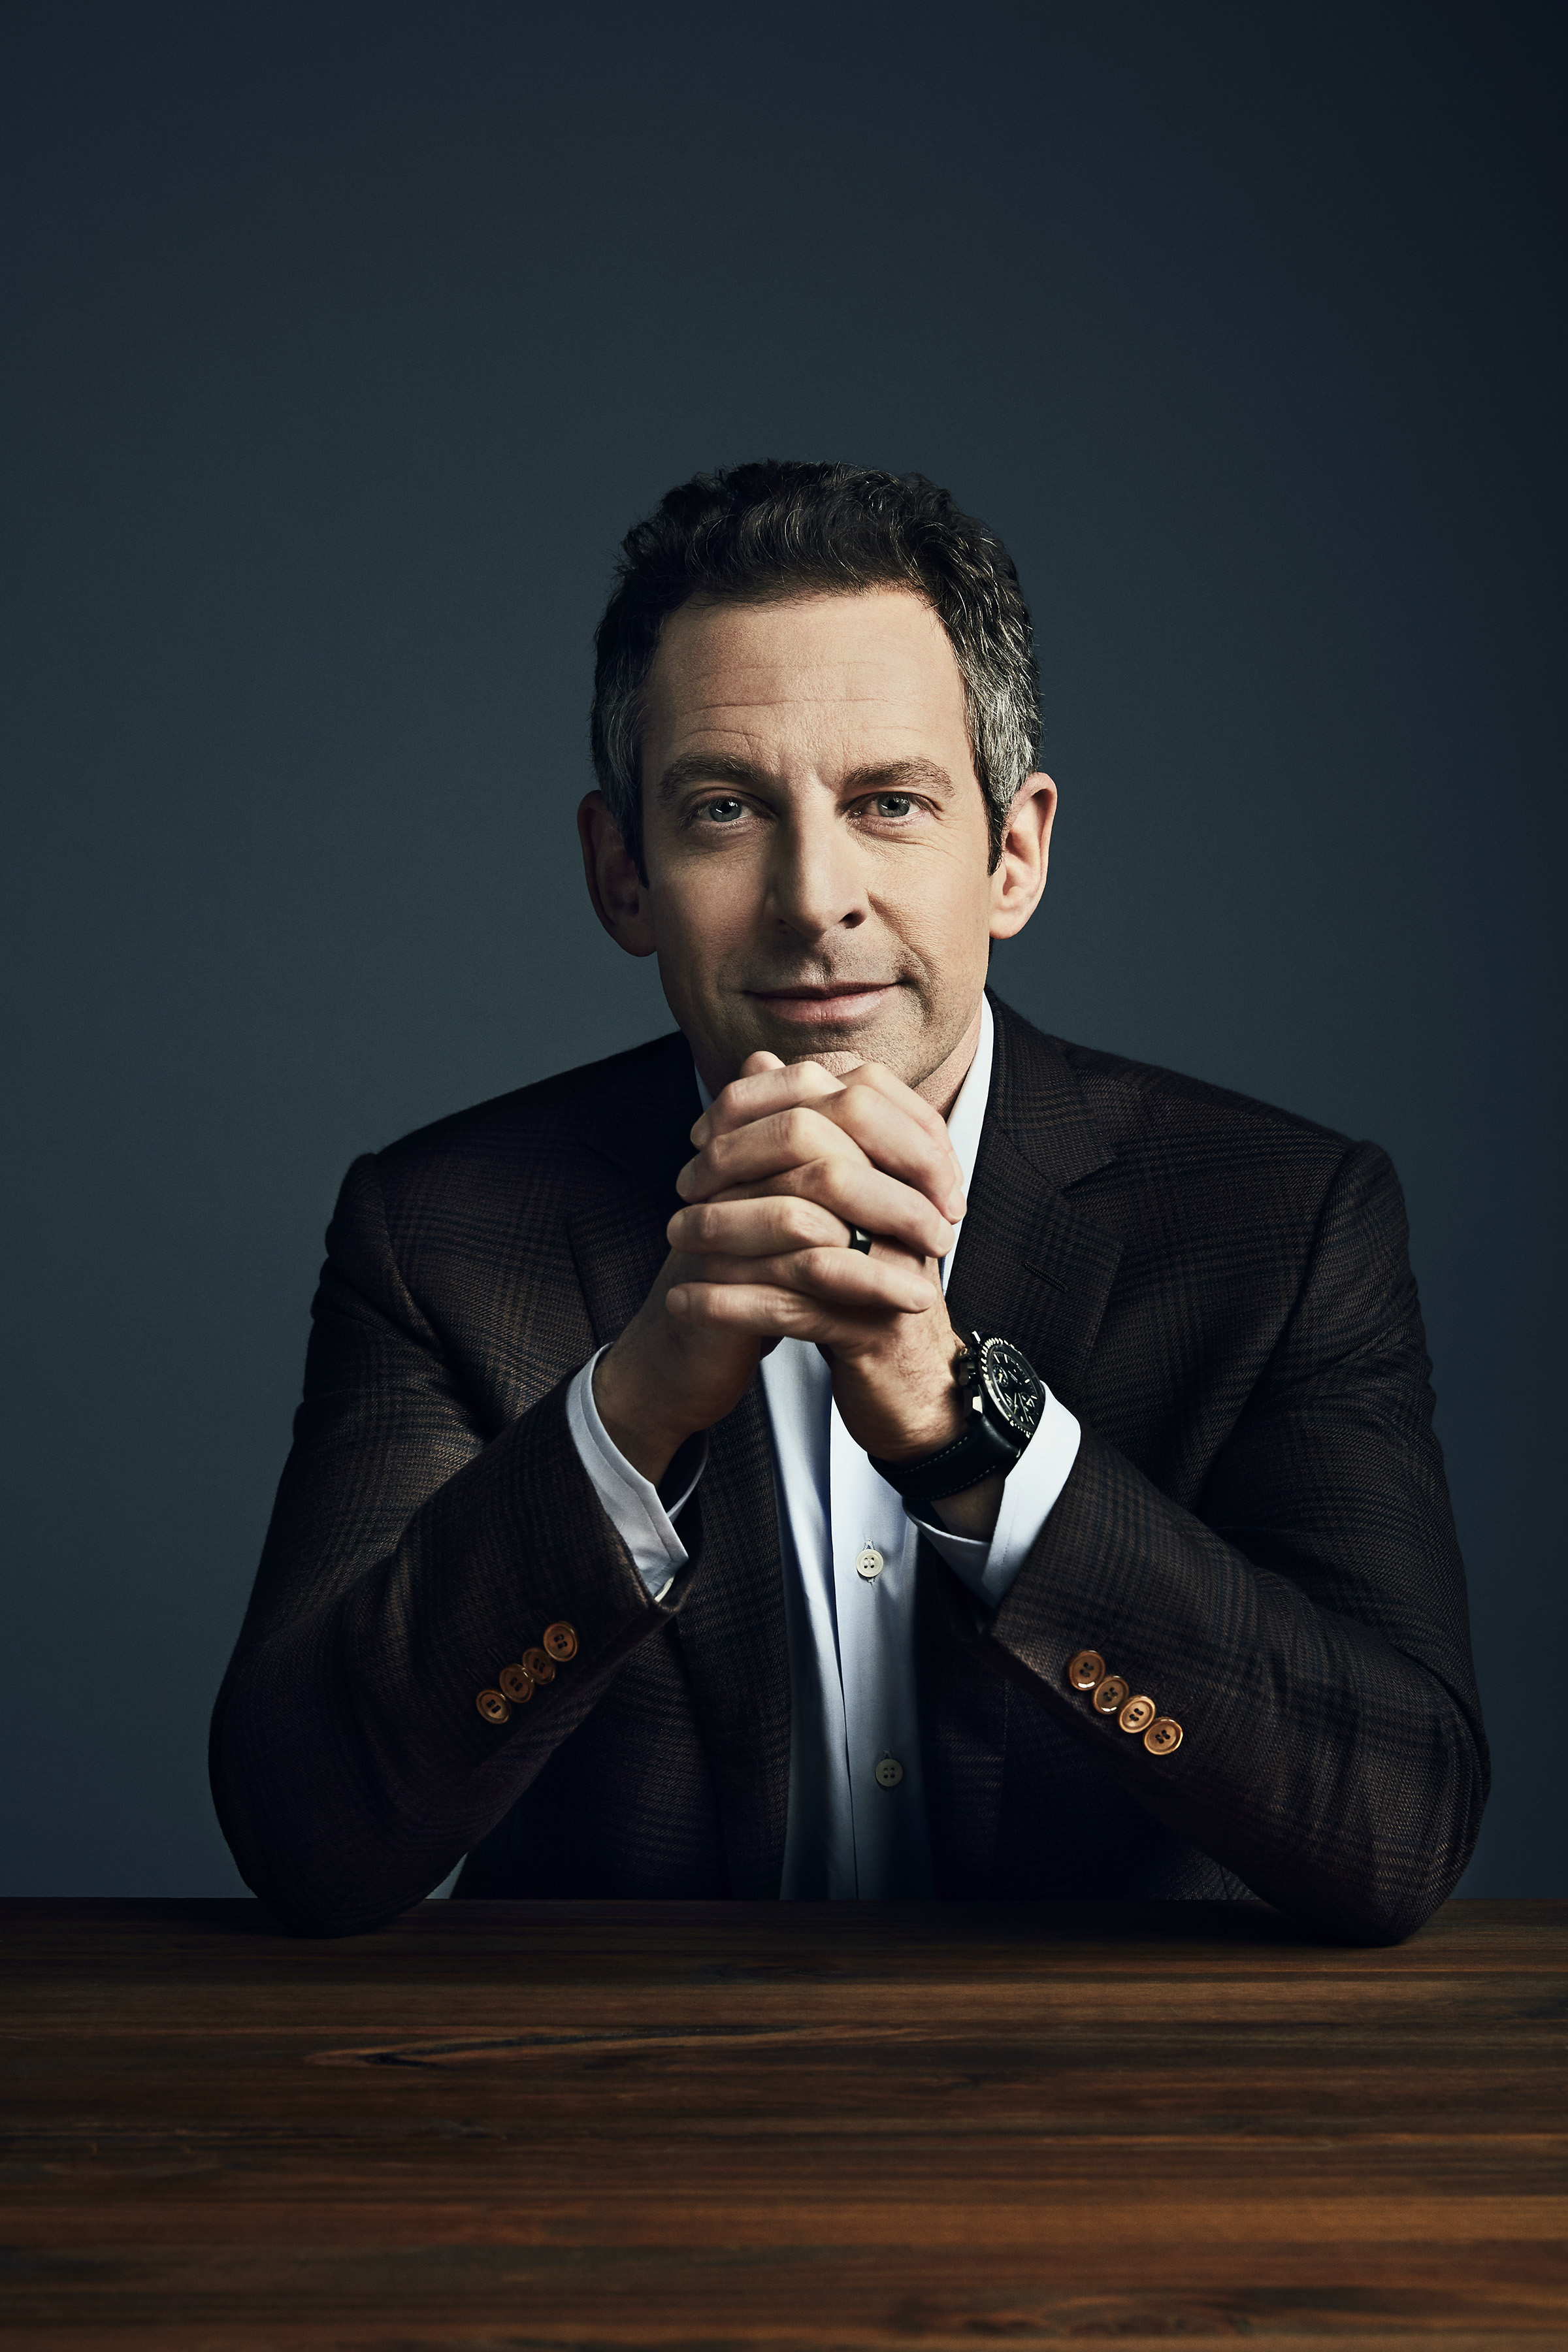 Sam Harris, the host of the podcast Making Sense, and author of books such as Waking Up: A Guide to Spirituality Without Religion.